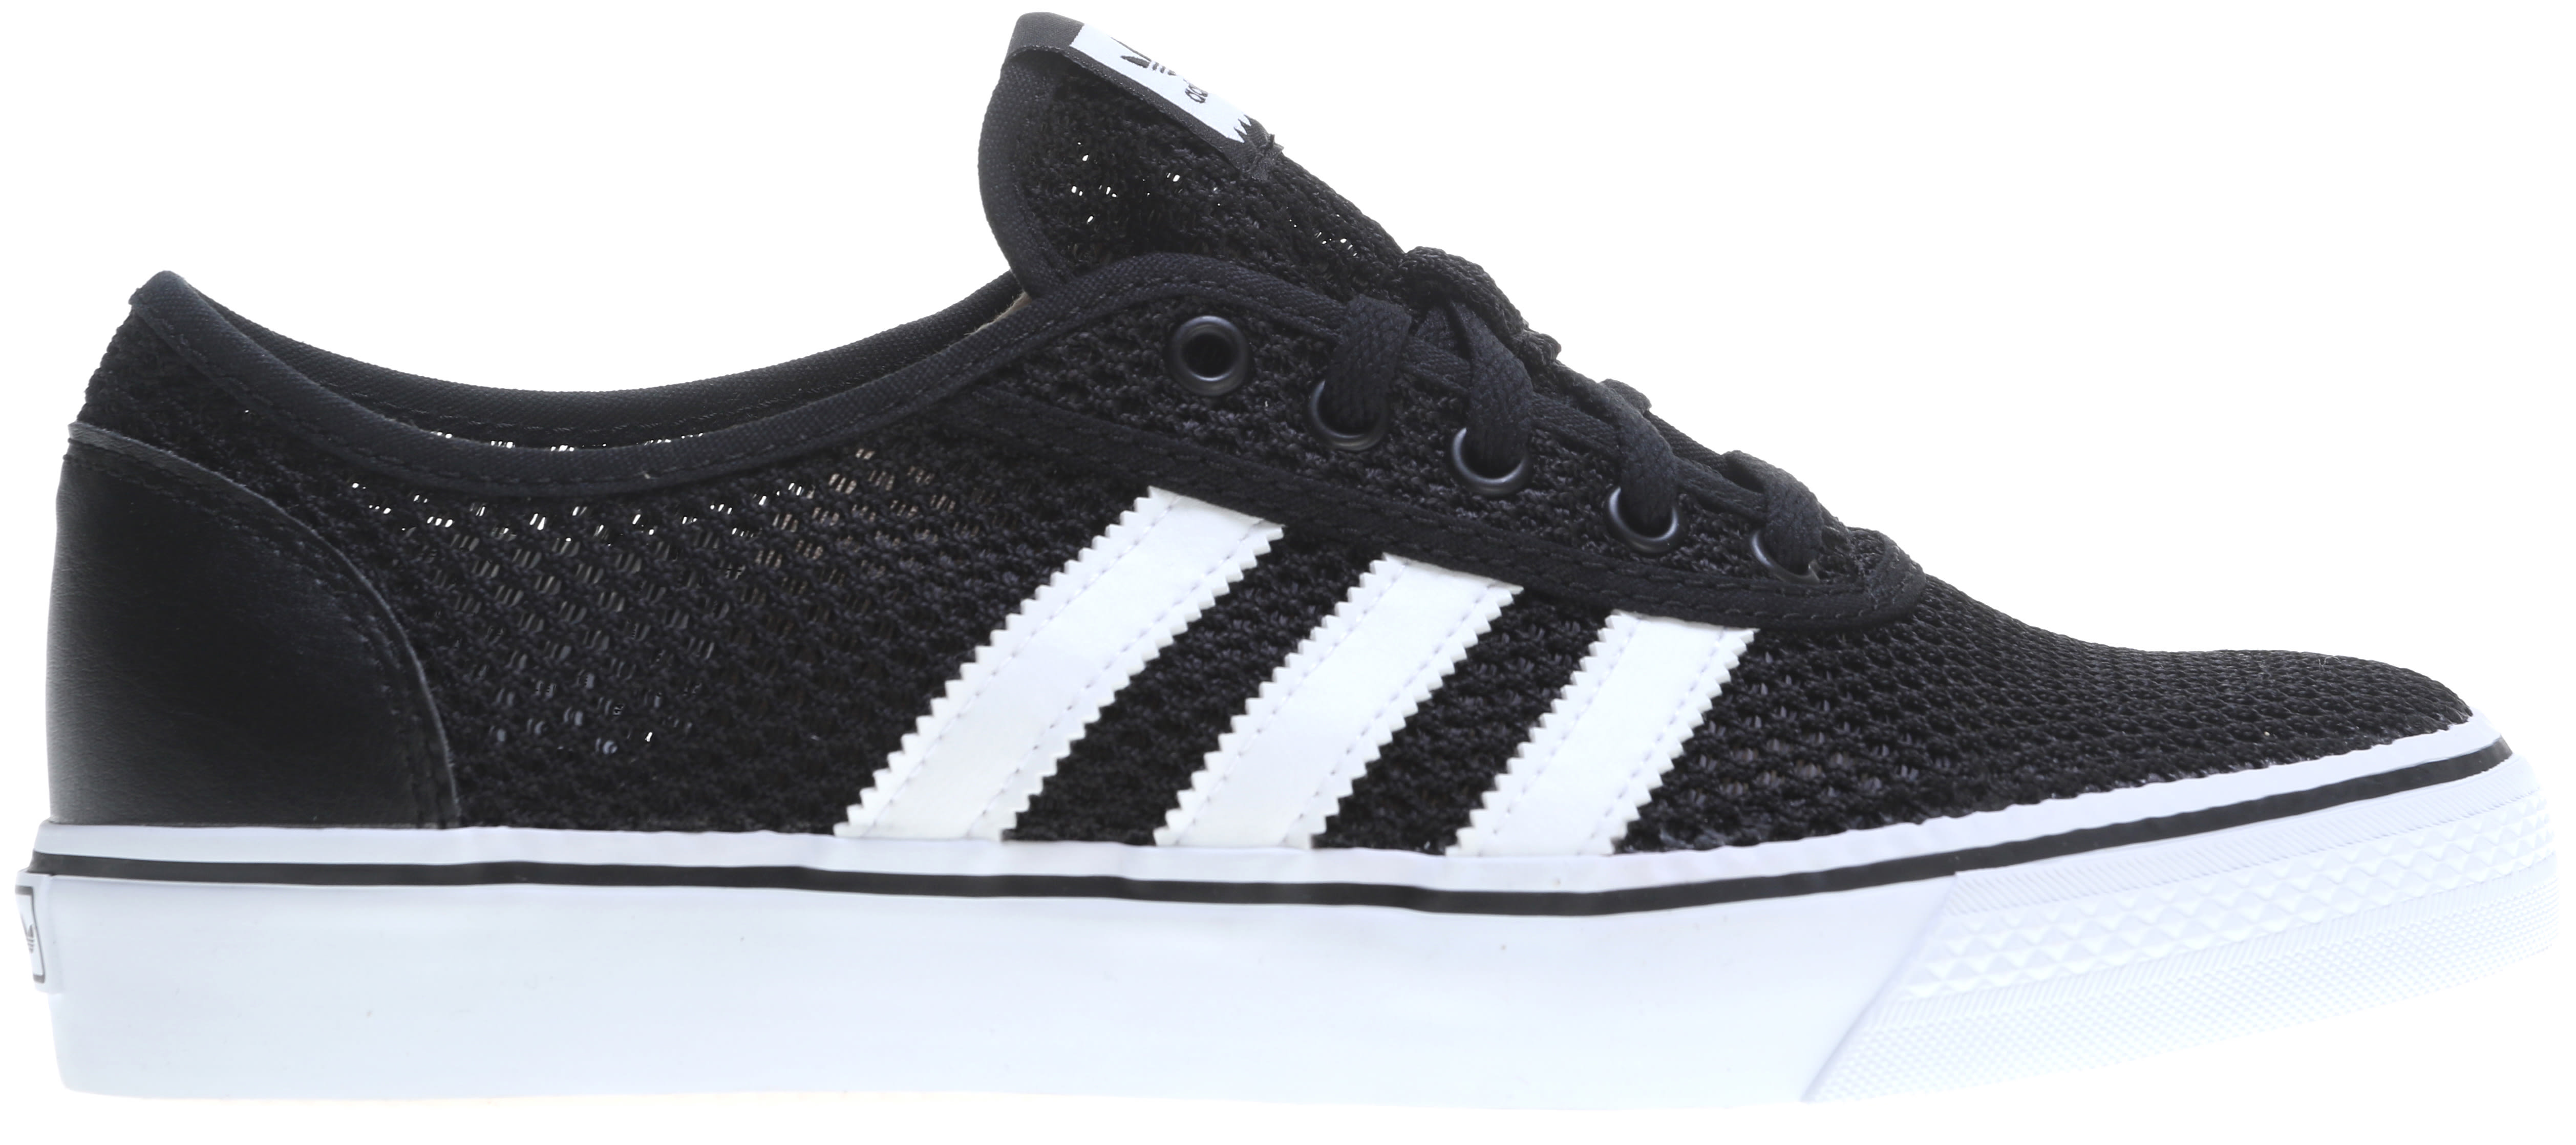 Adidas Adi-Ease Clima Skate Shoes - thumbnail 1